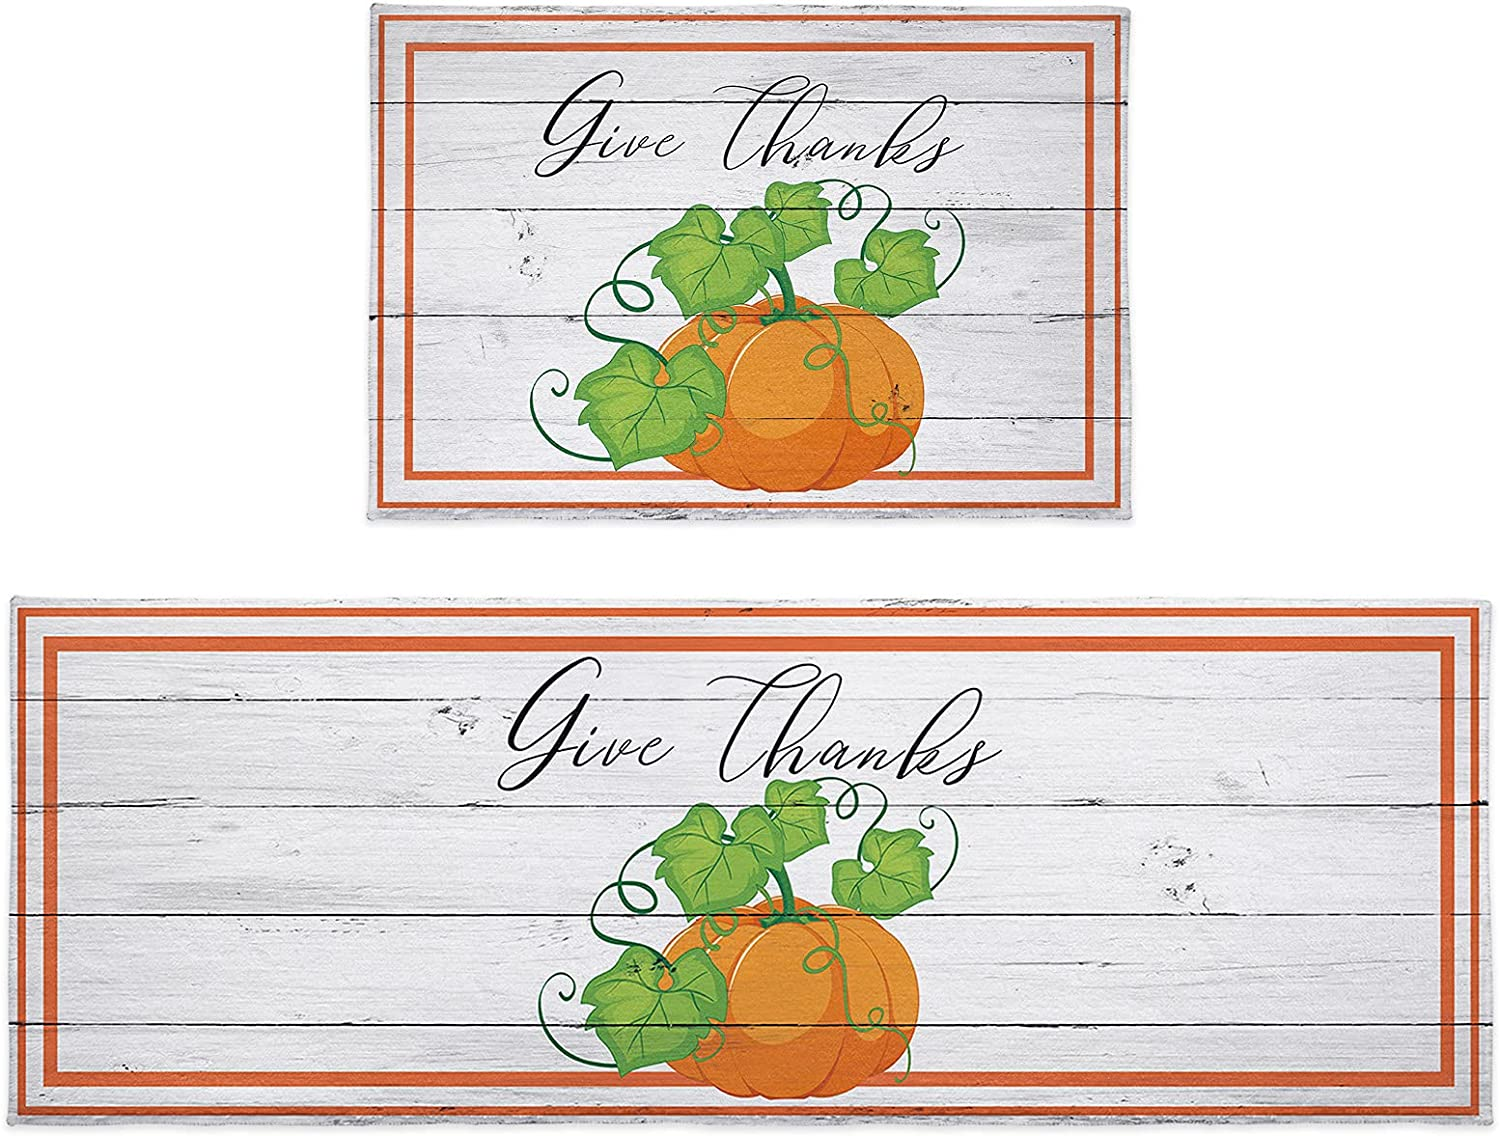 Cloud Dream Home specialty shop Kitchen Rug Sets Be super welcome Piece 2 Thanksgiving Pu Autumn